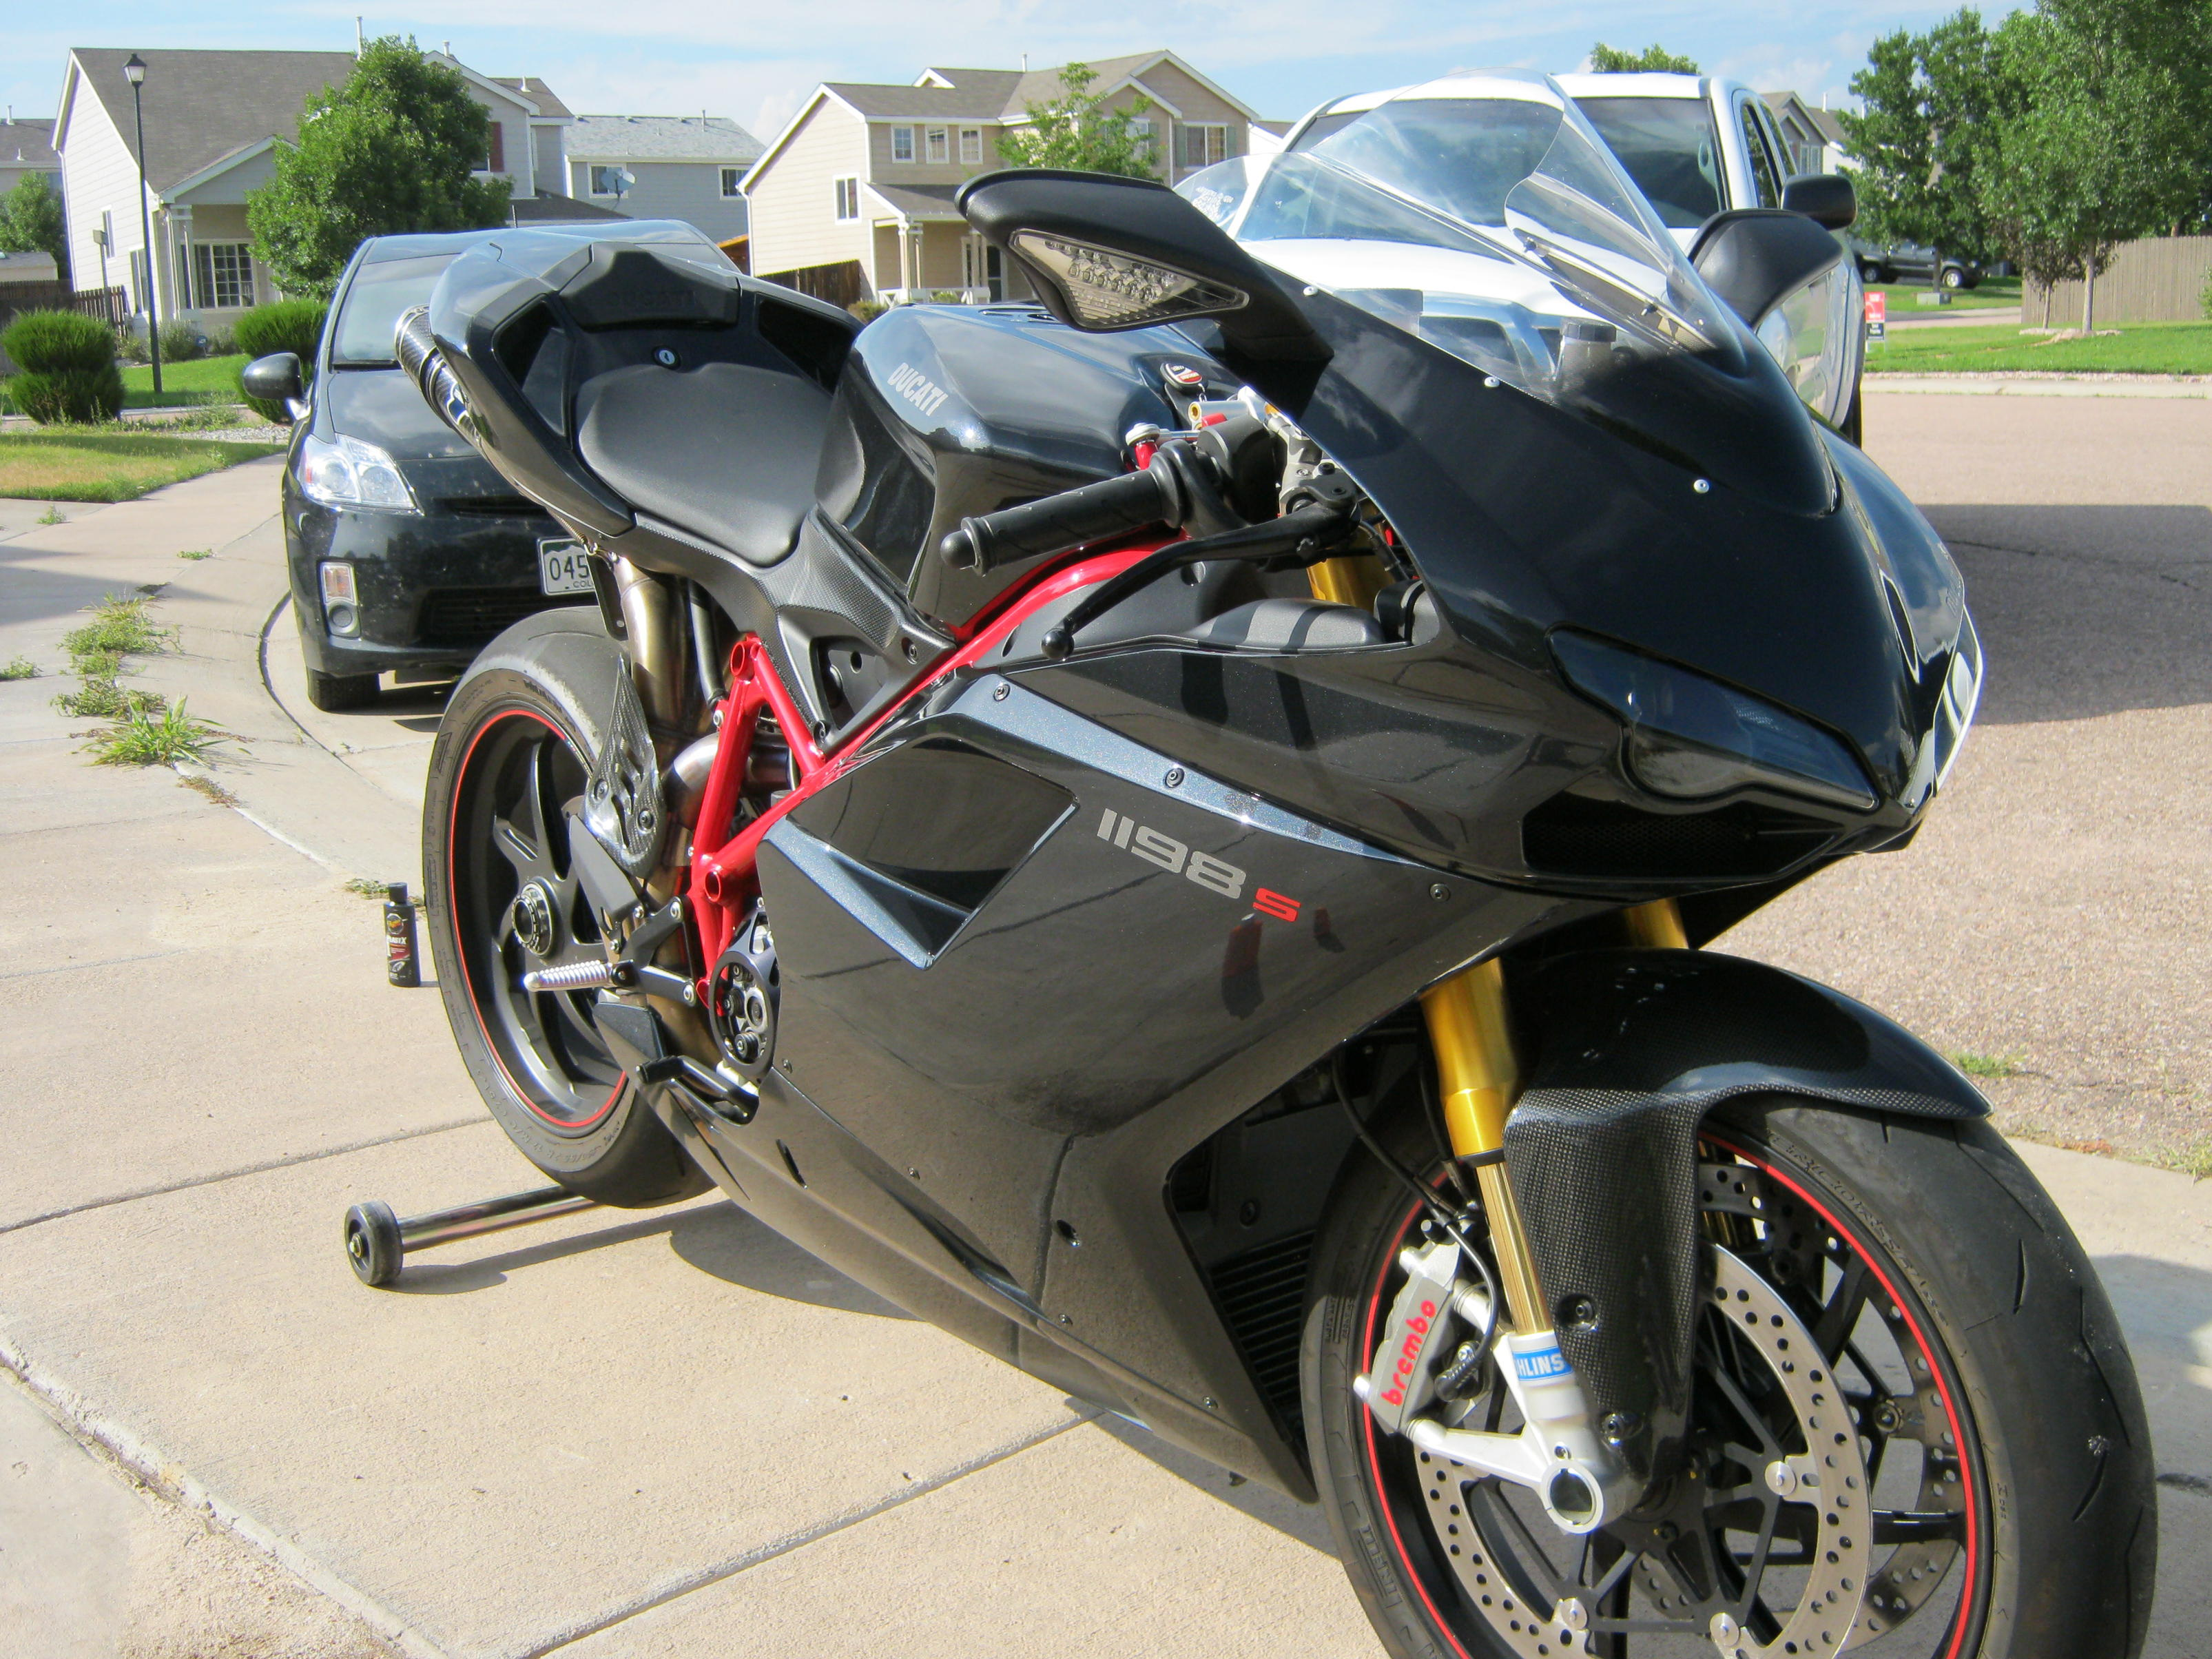 2010 (black) 1198s for sale!!!!! - ducati forum   the home for